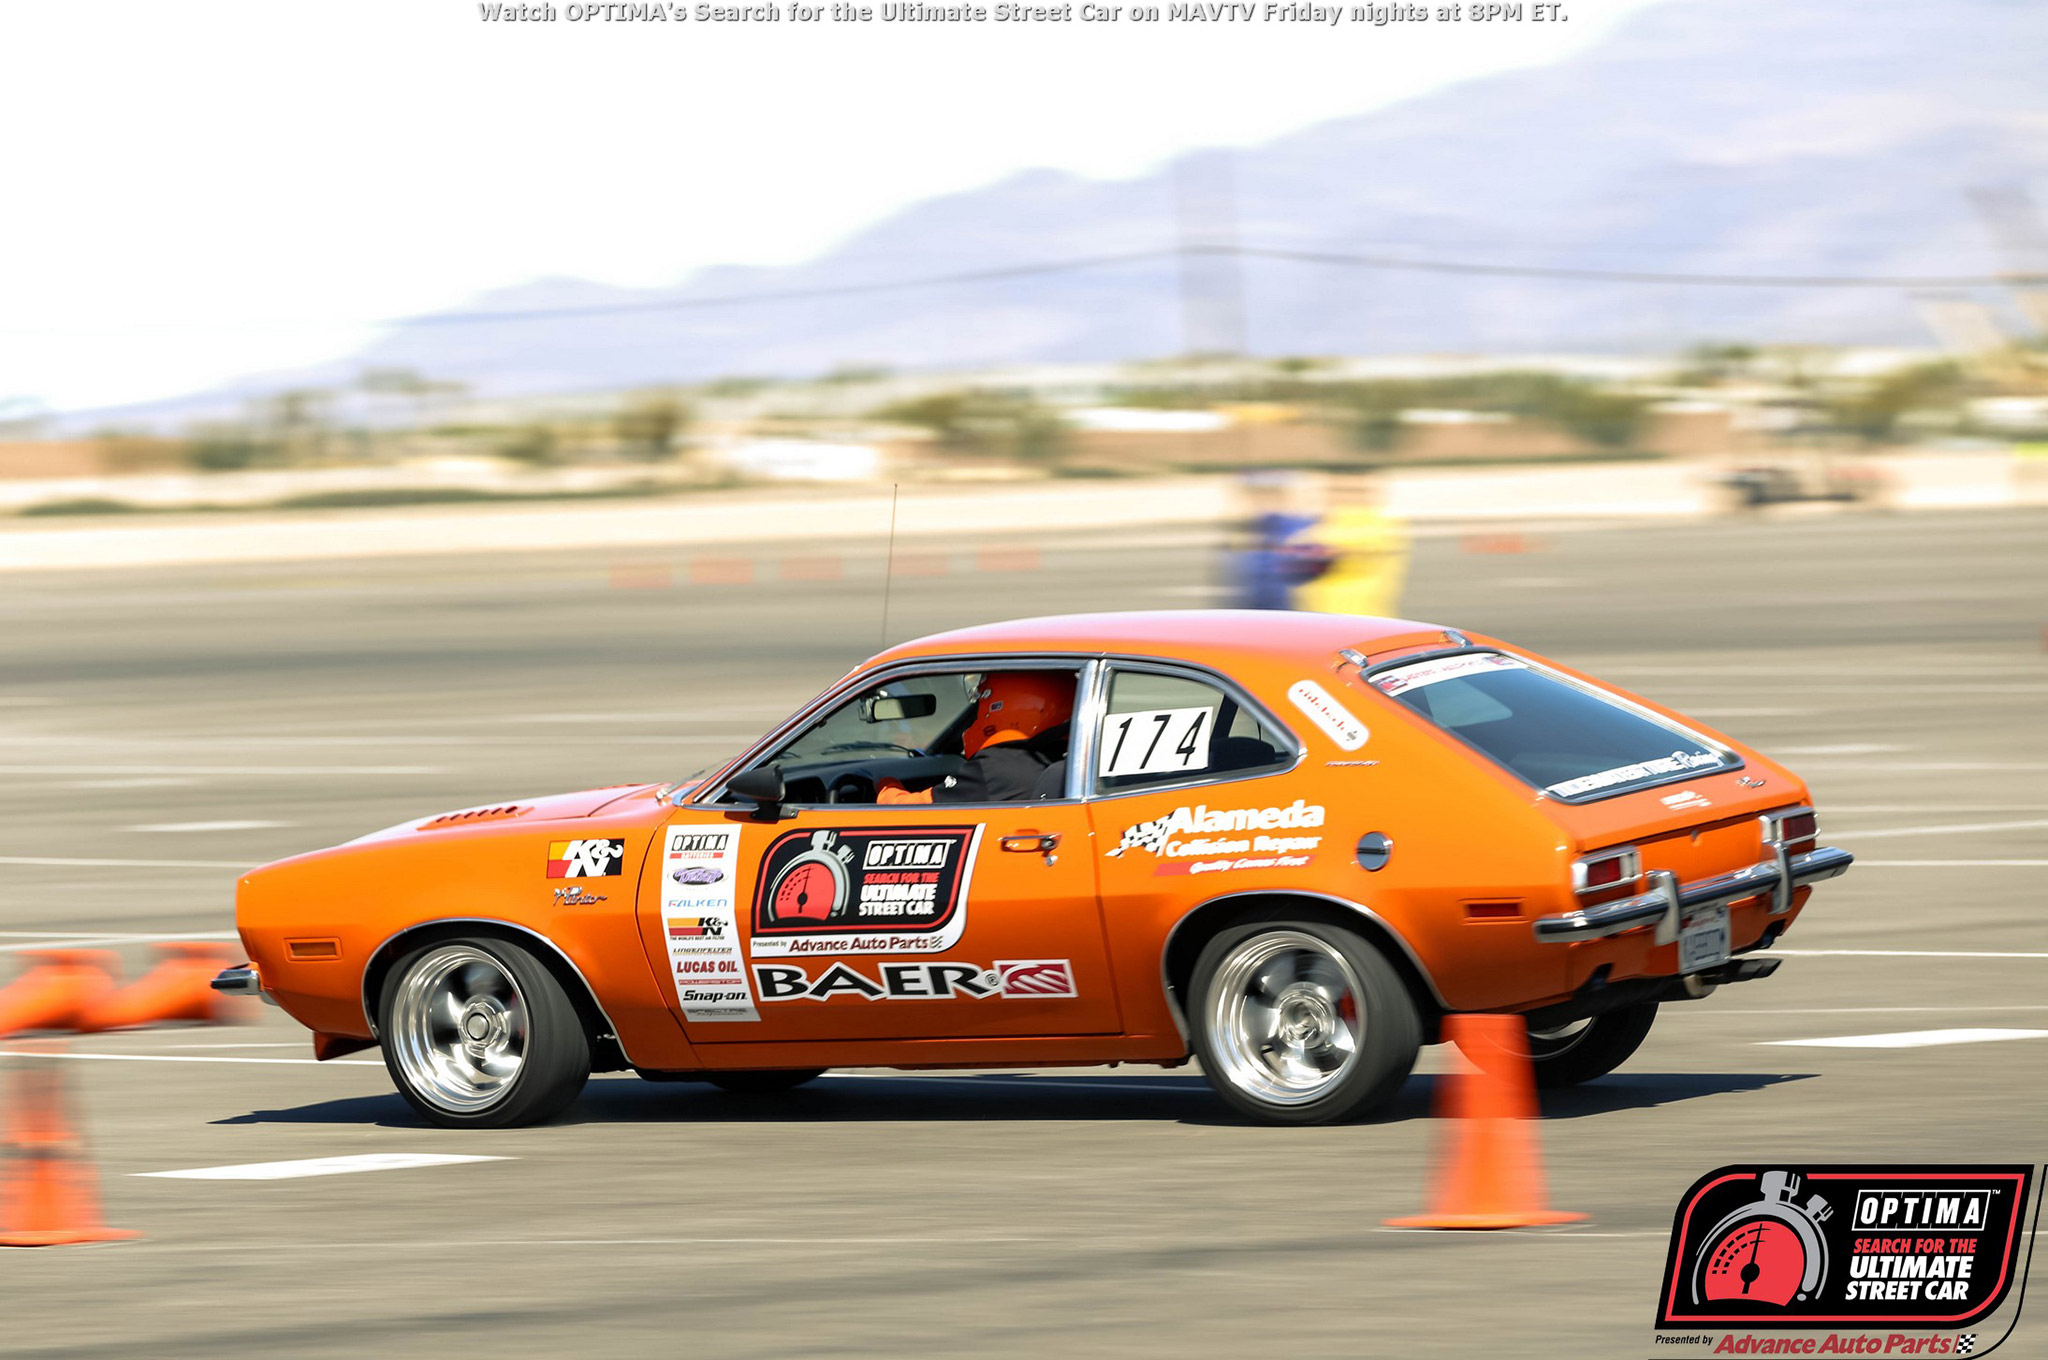 Joe Escobar hasn't run his 1974 Pinto since Las Vegas, but he is still hanging on to 10th place in the GTL points chase.